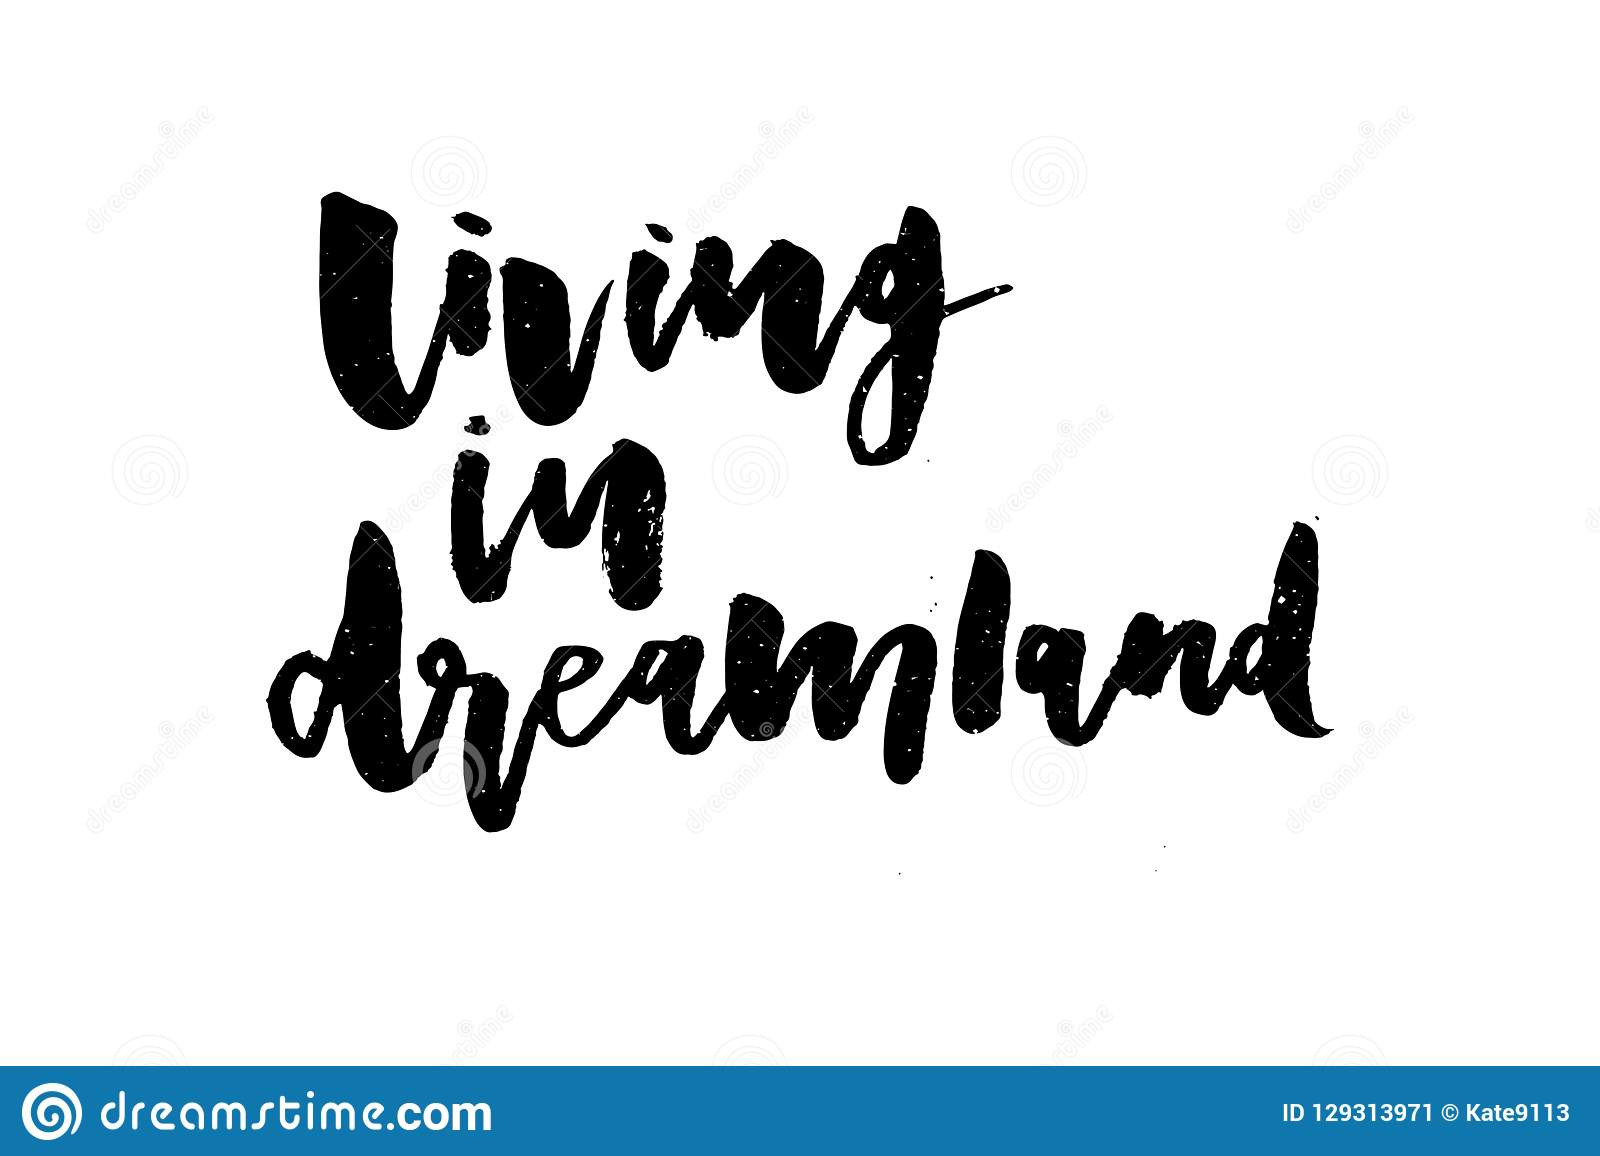 Slogan Dreamland phrase graphic vector Print Fashion lettering calligraphy